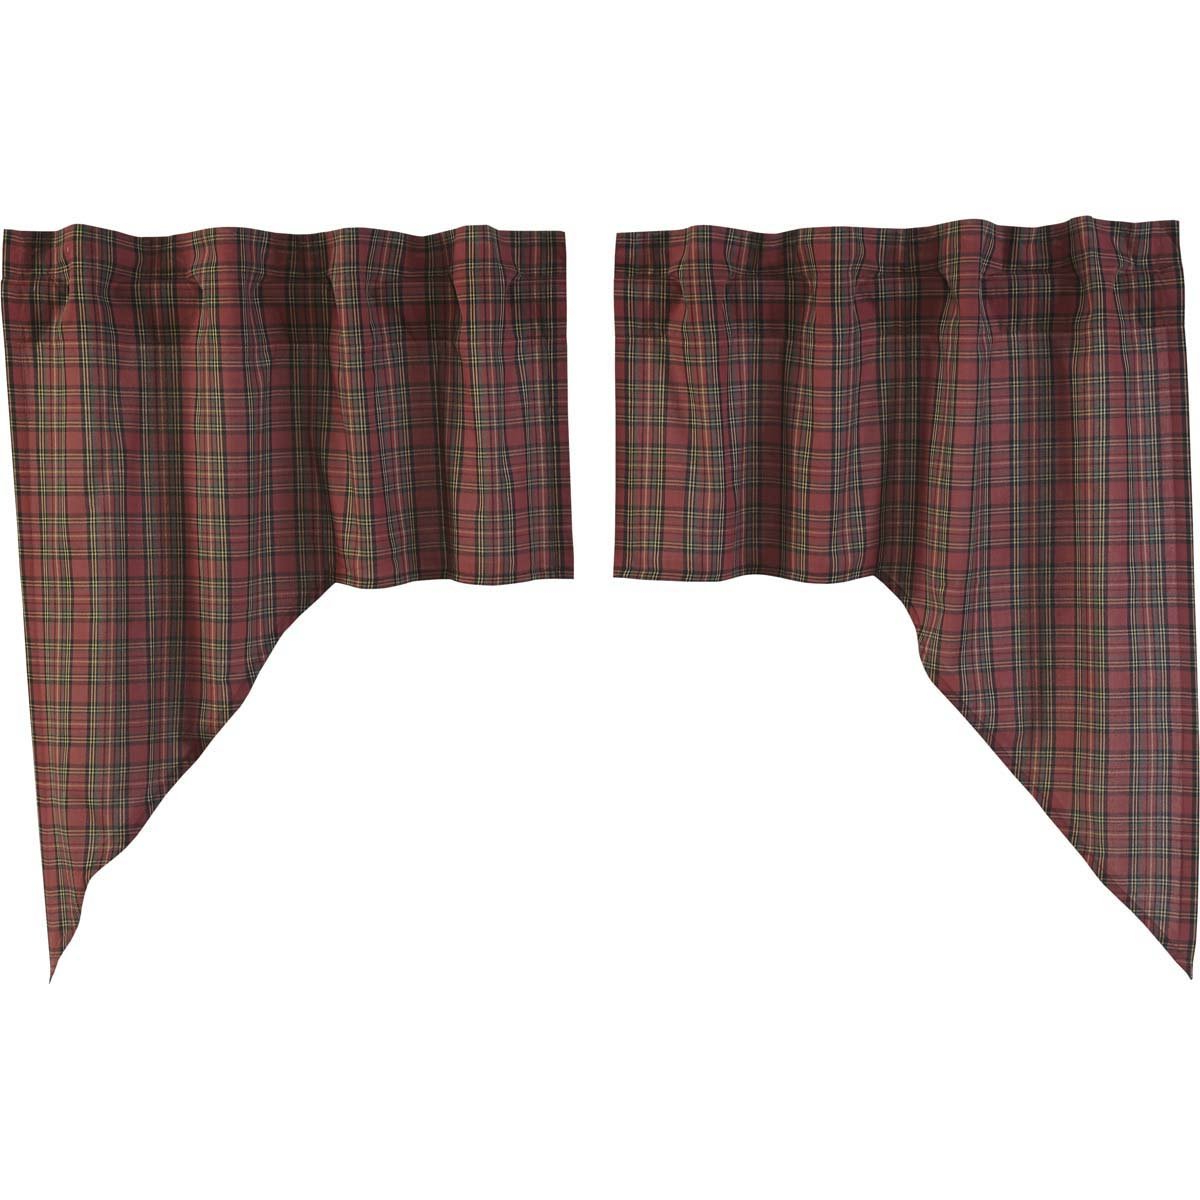 Latest Red Primitive Kitchen Curtains Intended For Amazon: Vhc Brands Primitive Rustic & Lodge Kitchen (View 6 of 20)